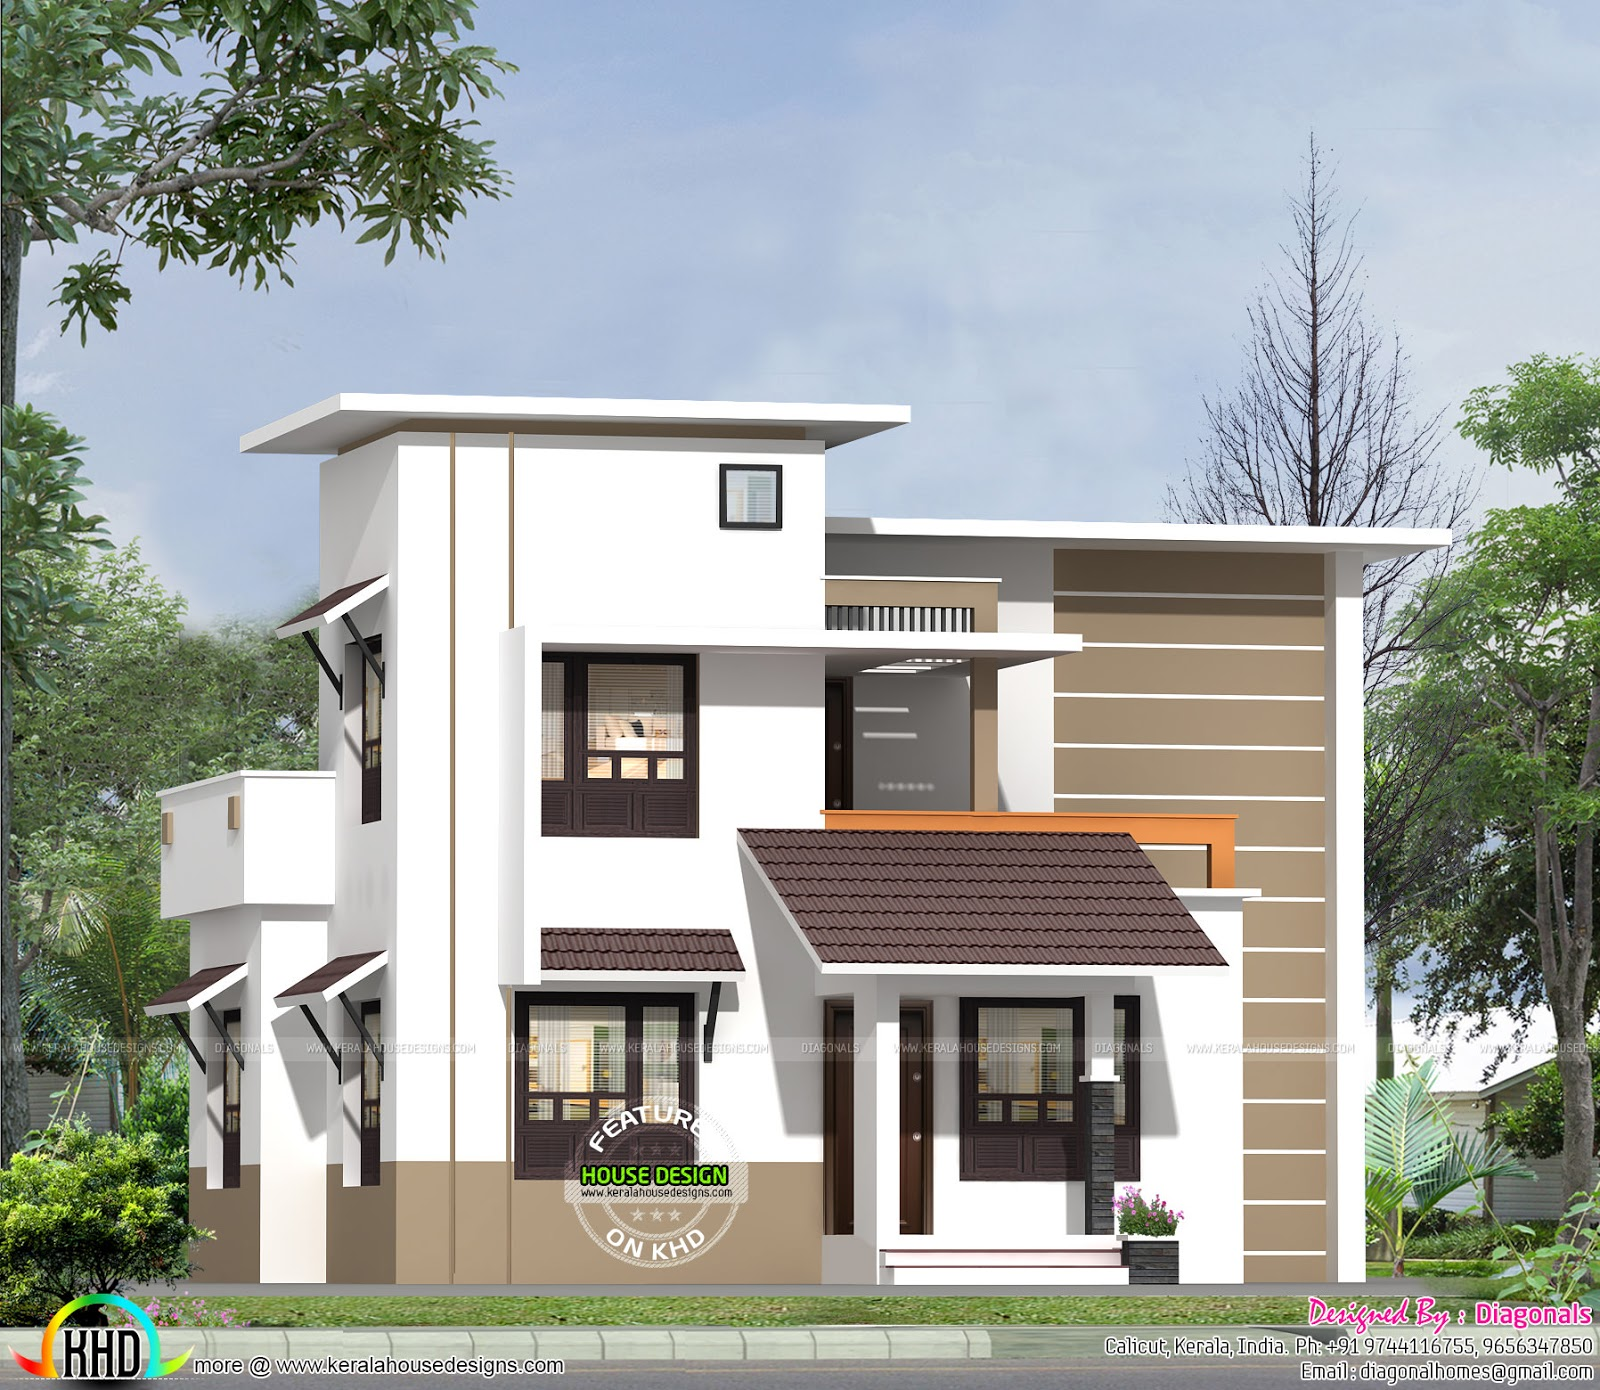 Homes design mei 2016 for Low cost building